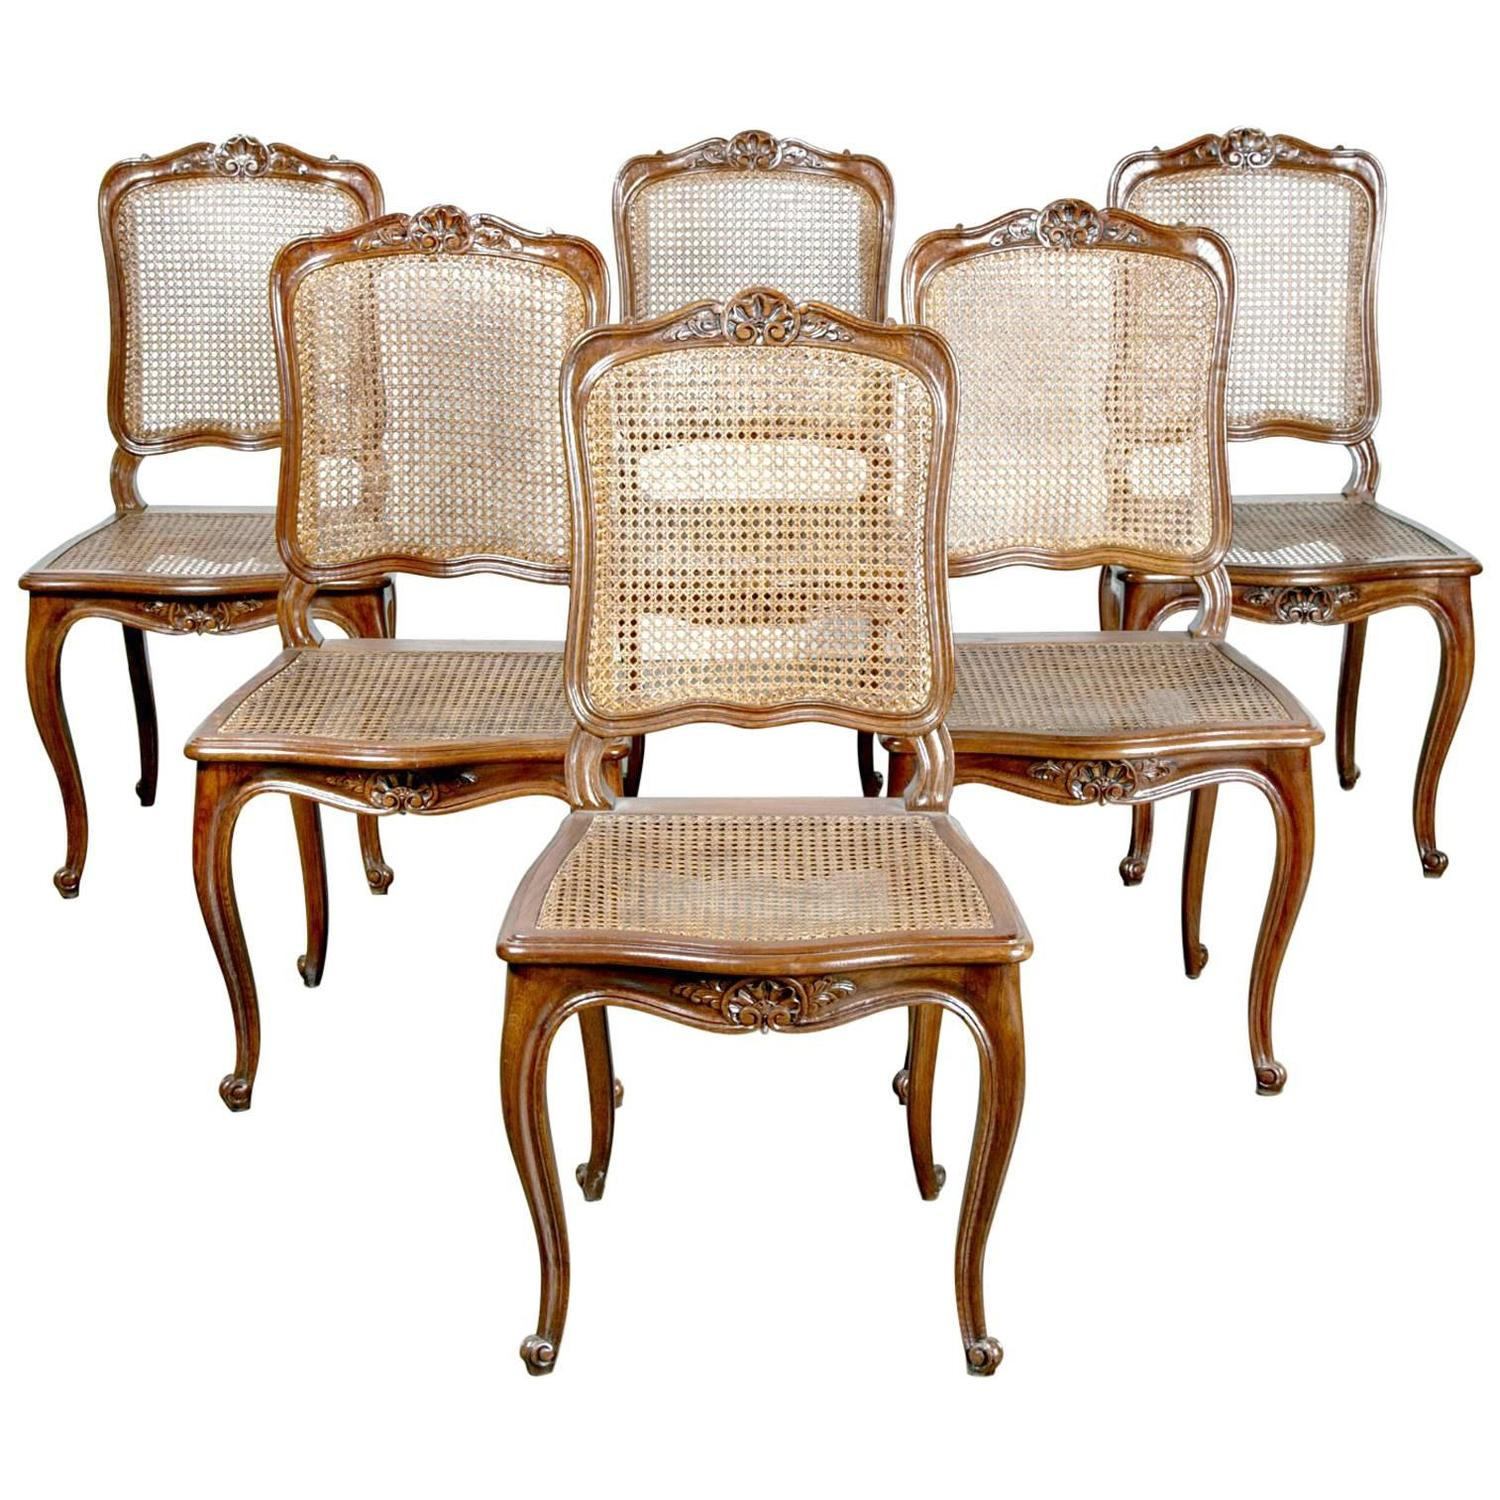 Set of Six French Louis XV Style Cane Dining Chairs in Walnut at